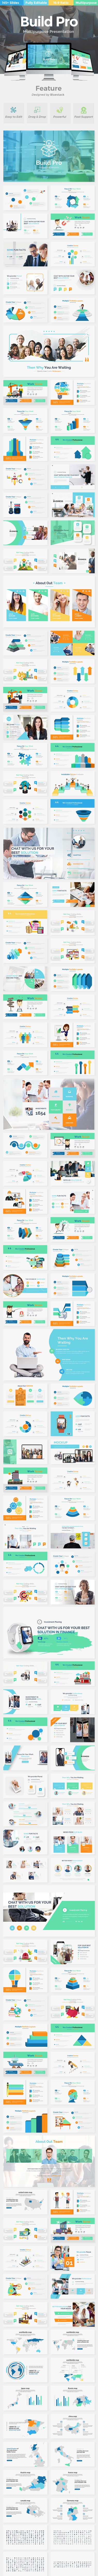 Build Pro Business Keynote Template - Business Keynote Templates